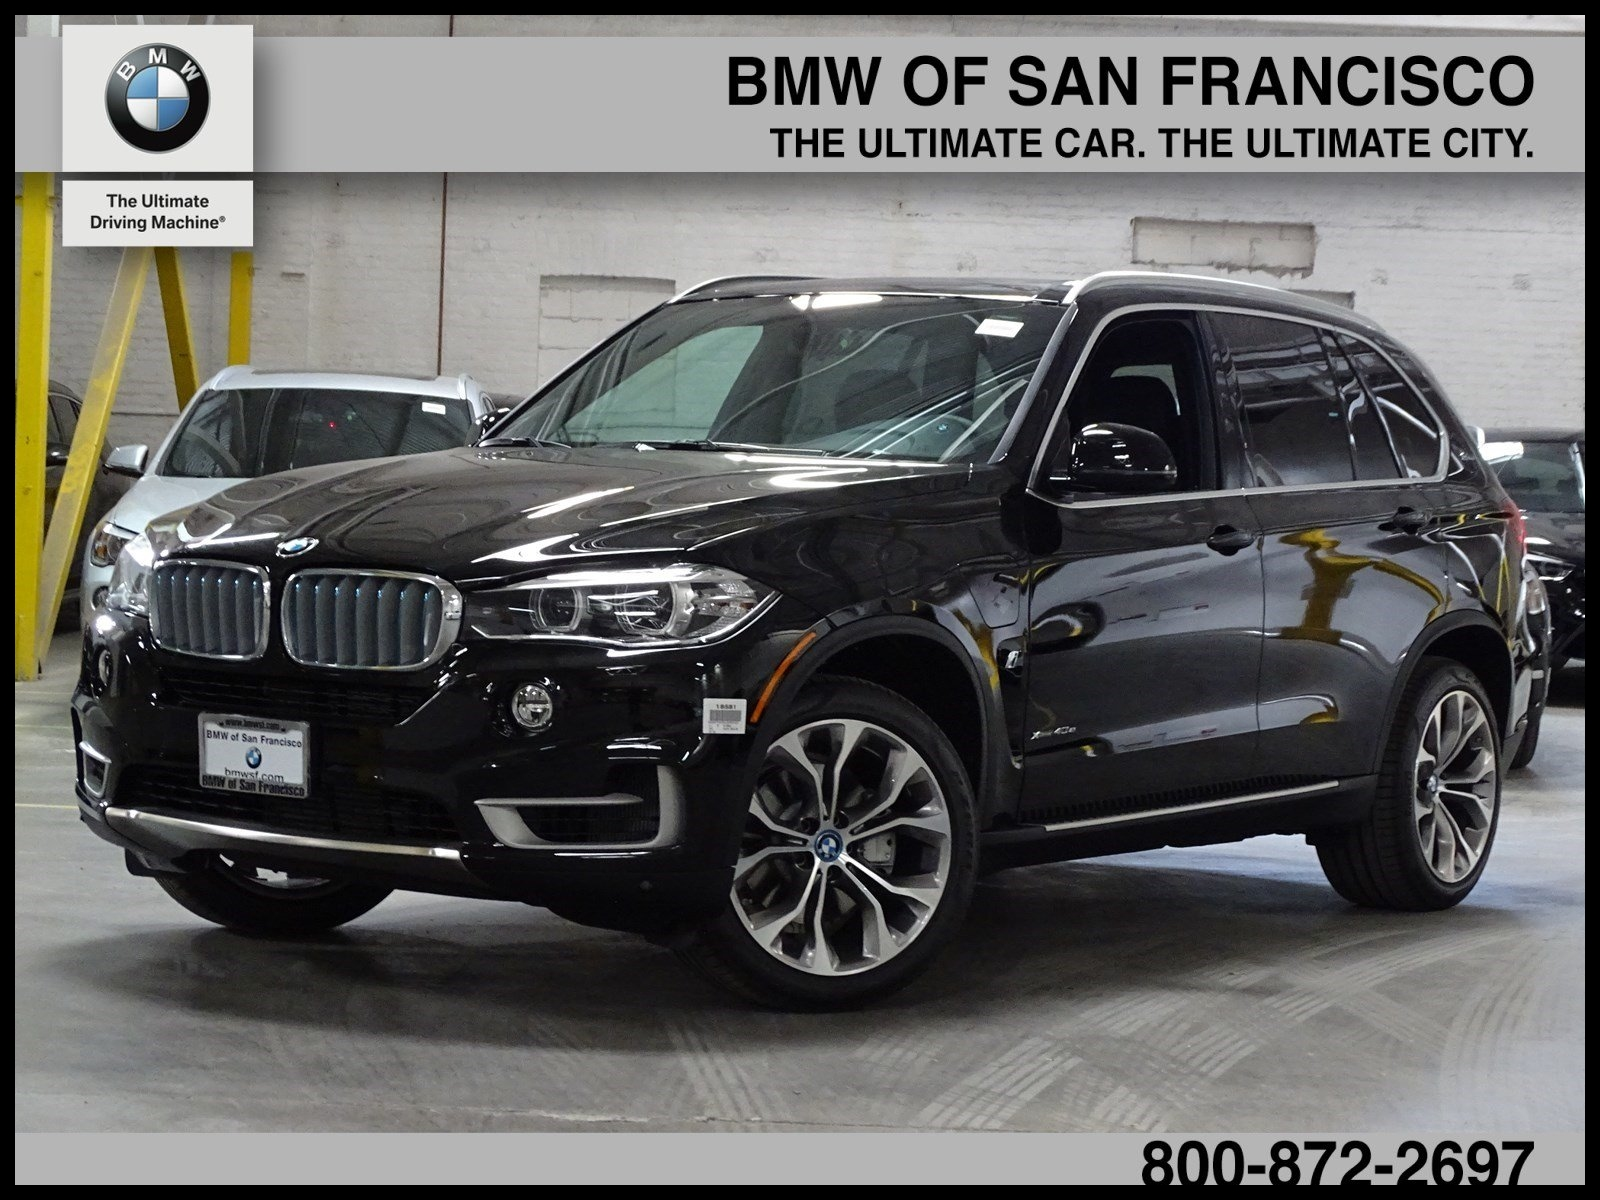 San Francisco Bmw Service New 2018 BMW X5 xDrive40e iPerformance Sport Utility in San